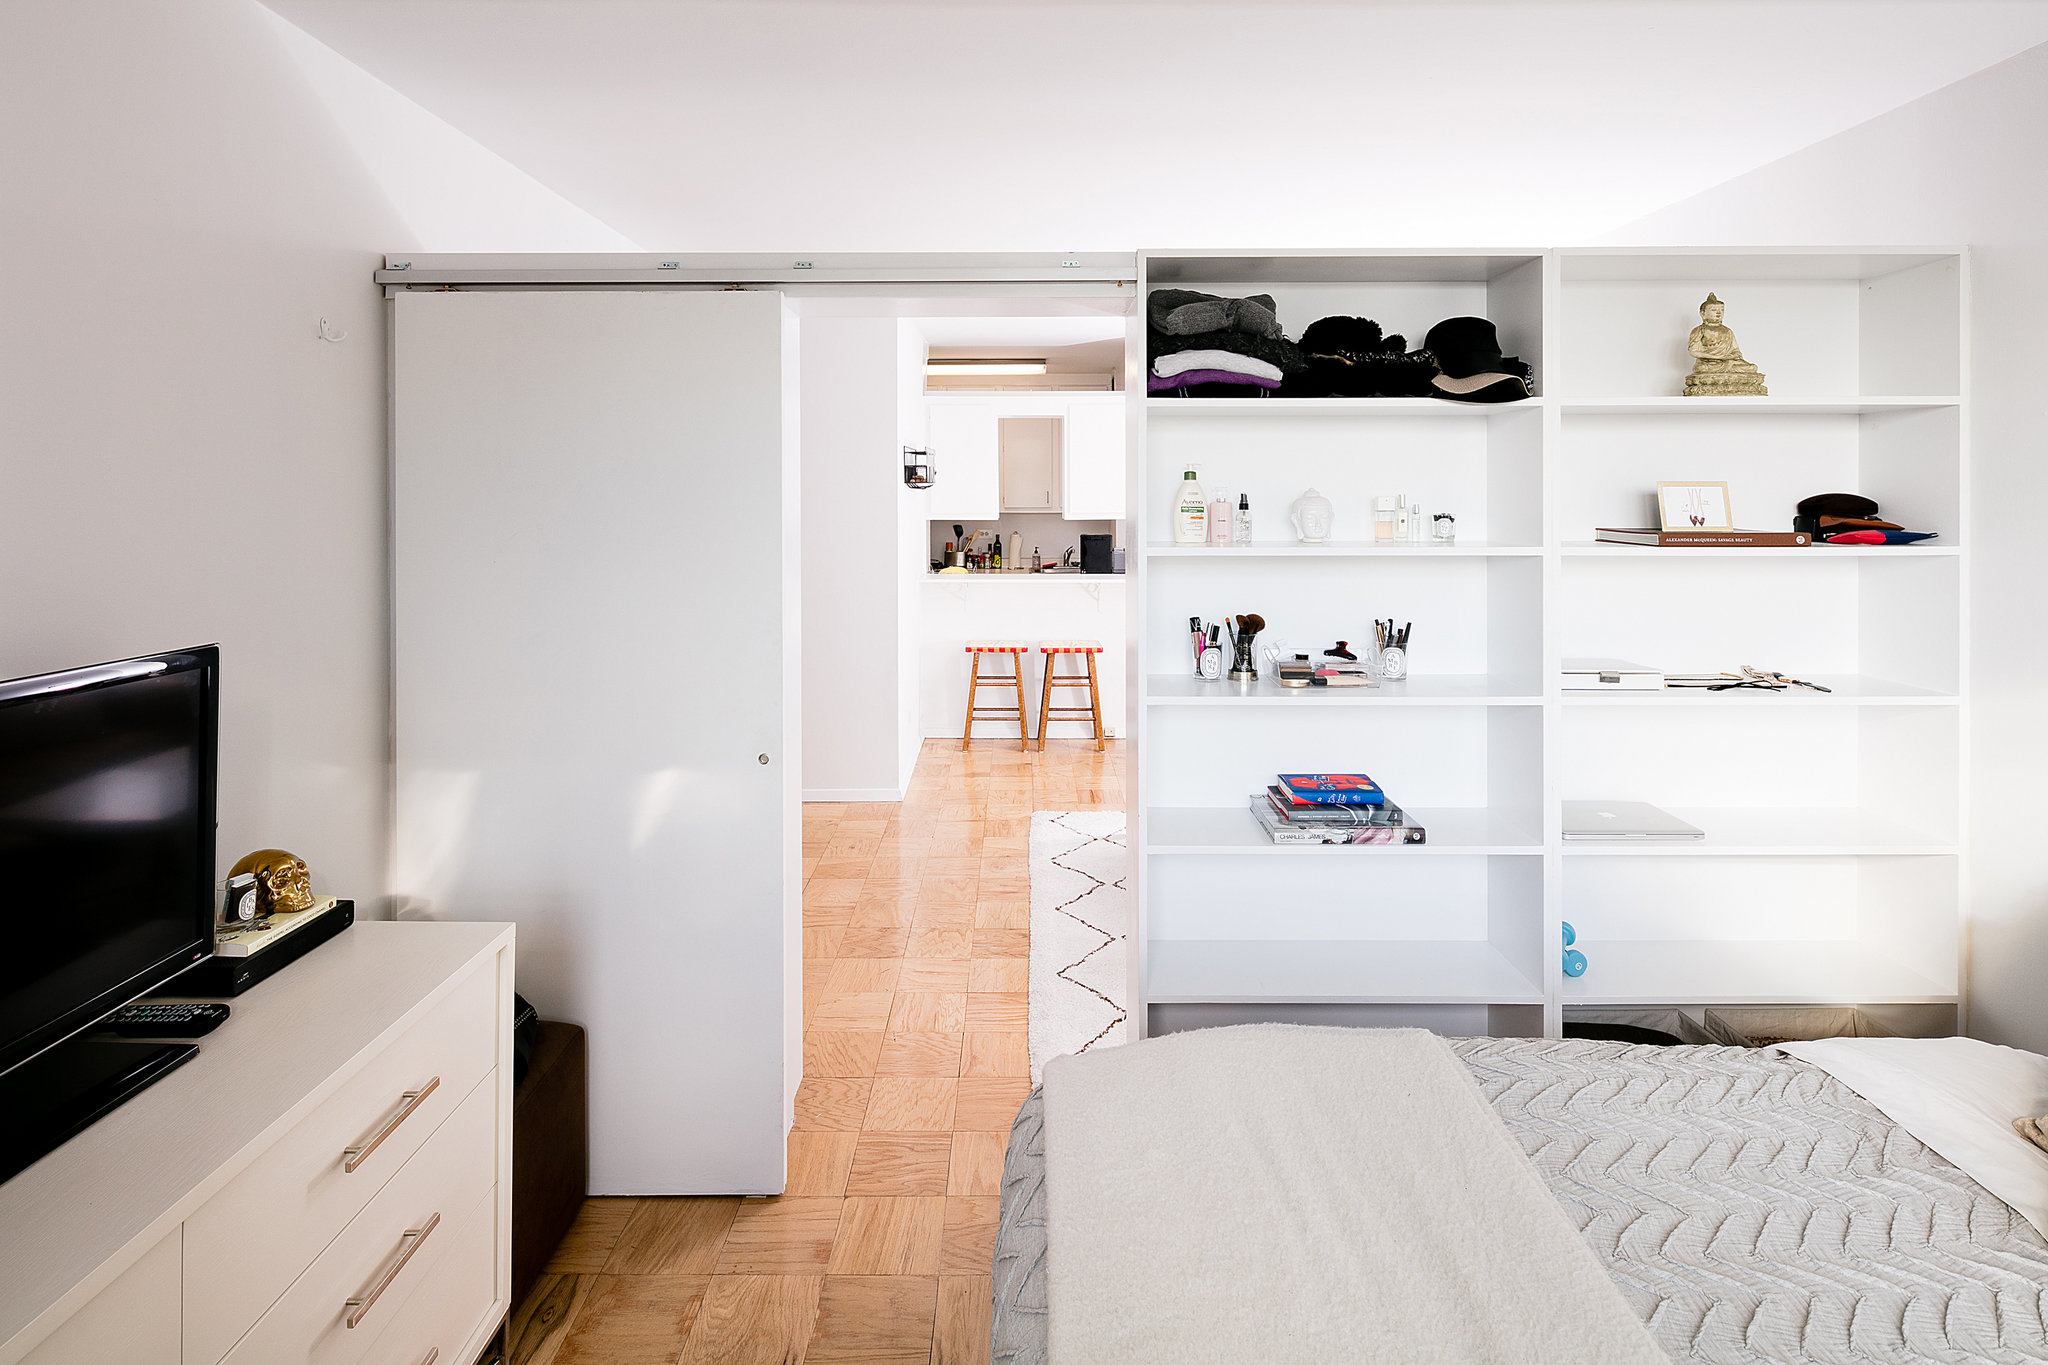 Small Budget Temporary Pressurized Walls And Maximum Features In NYC